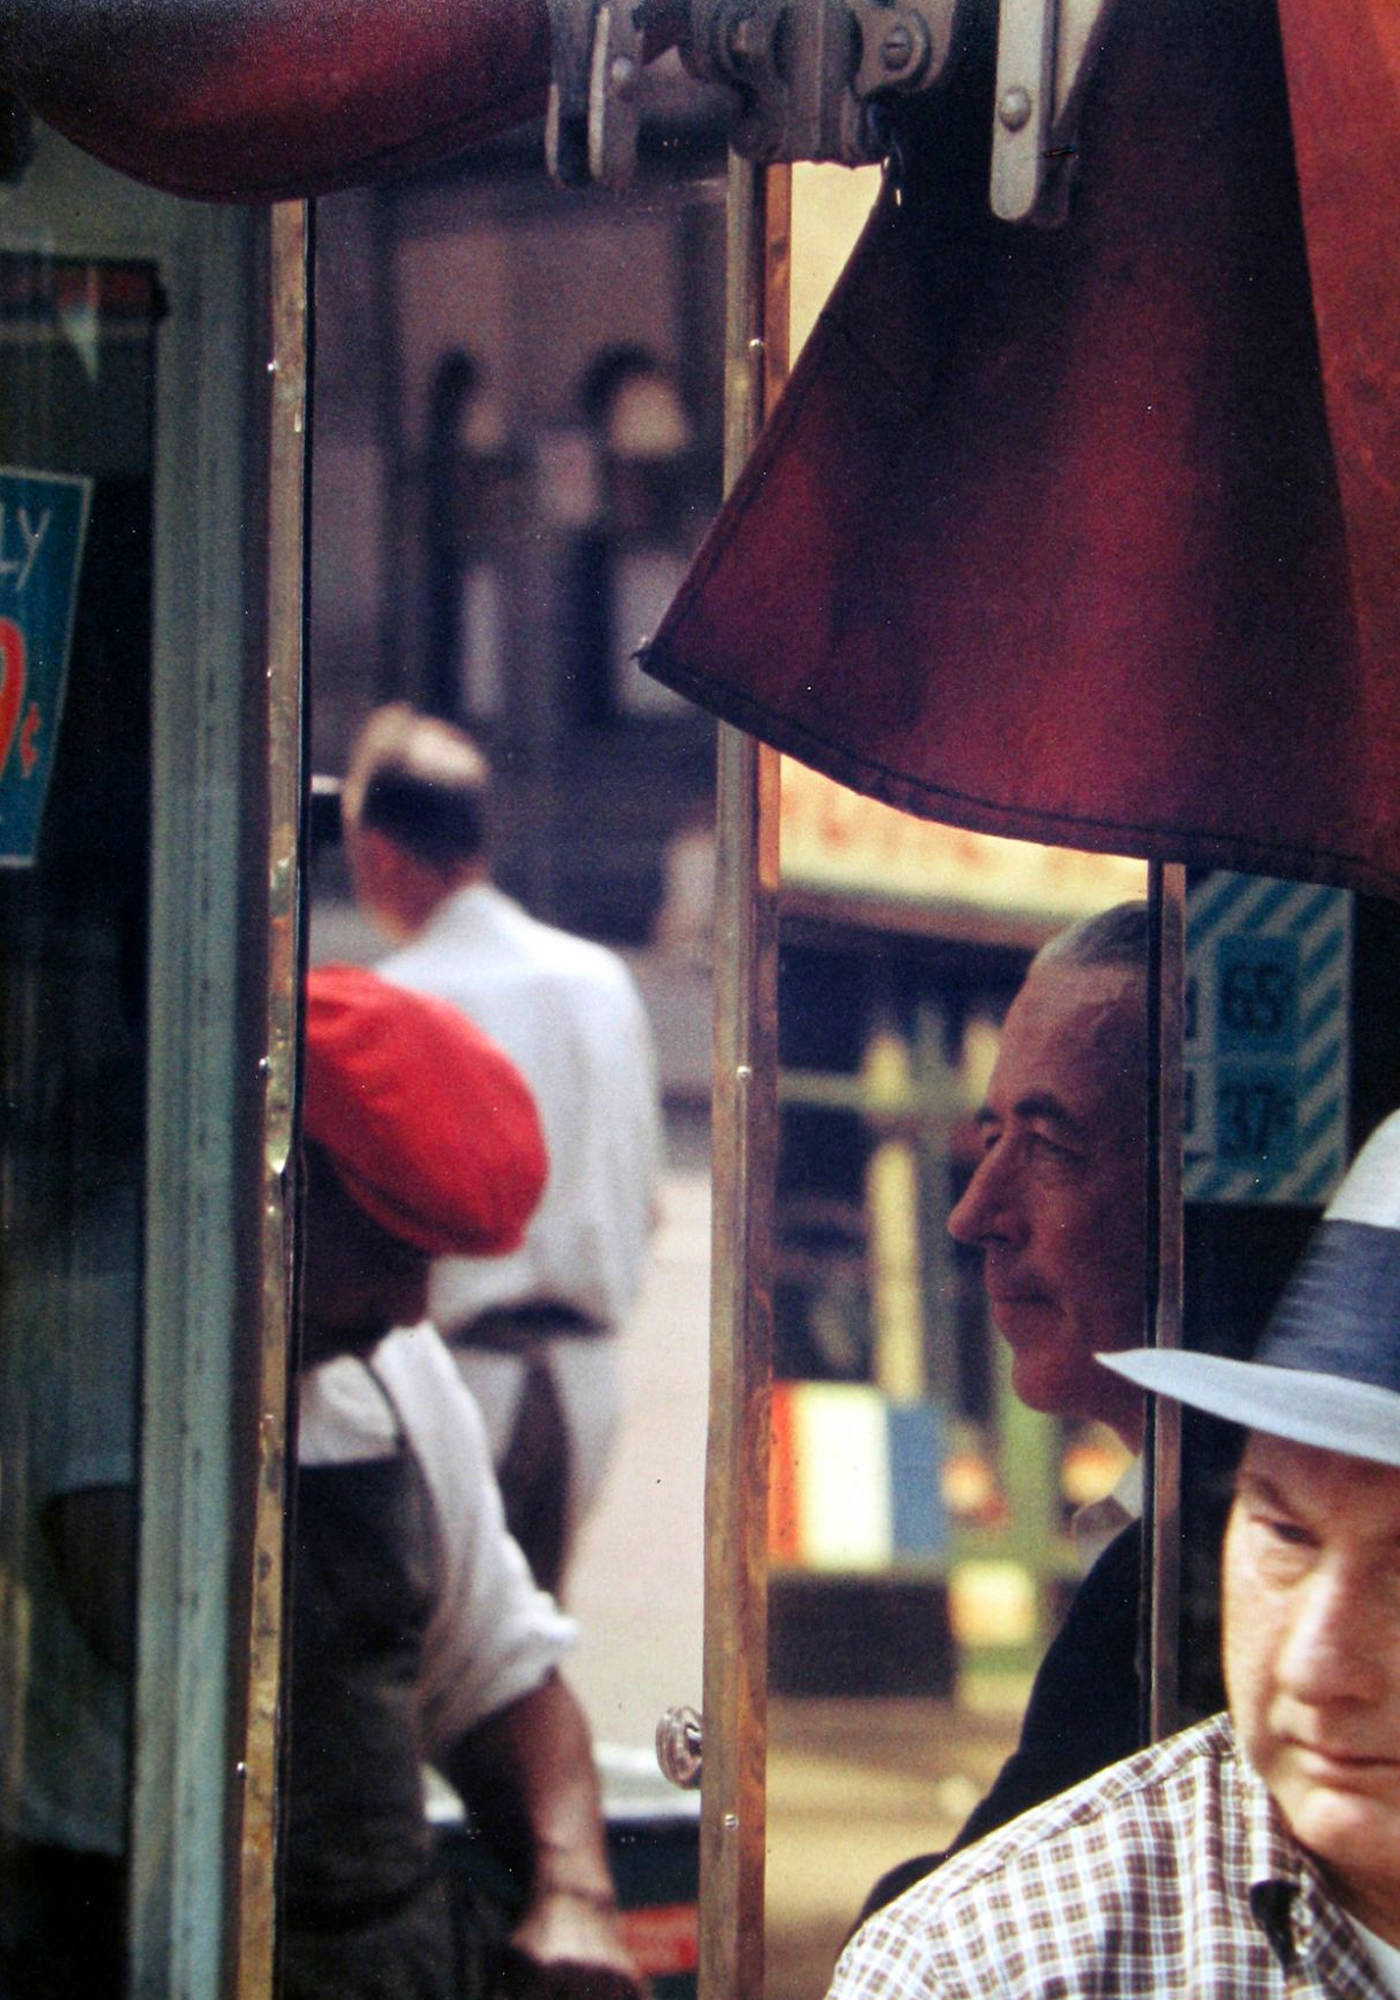 Saul Leiter Viewing Room Scene Reflection 1958